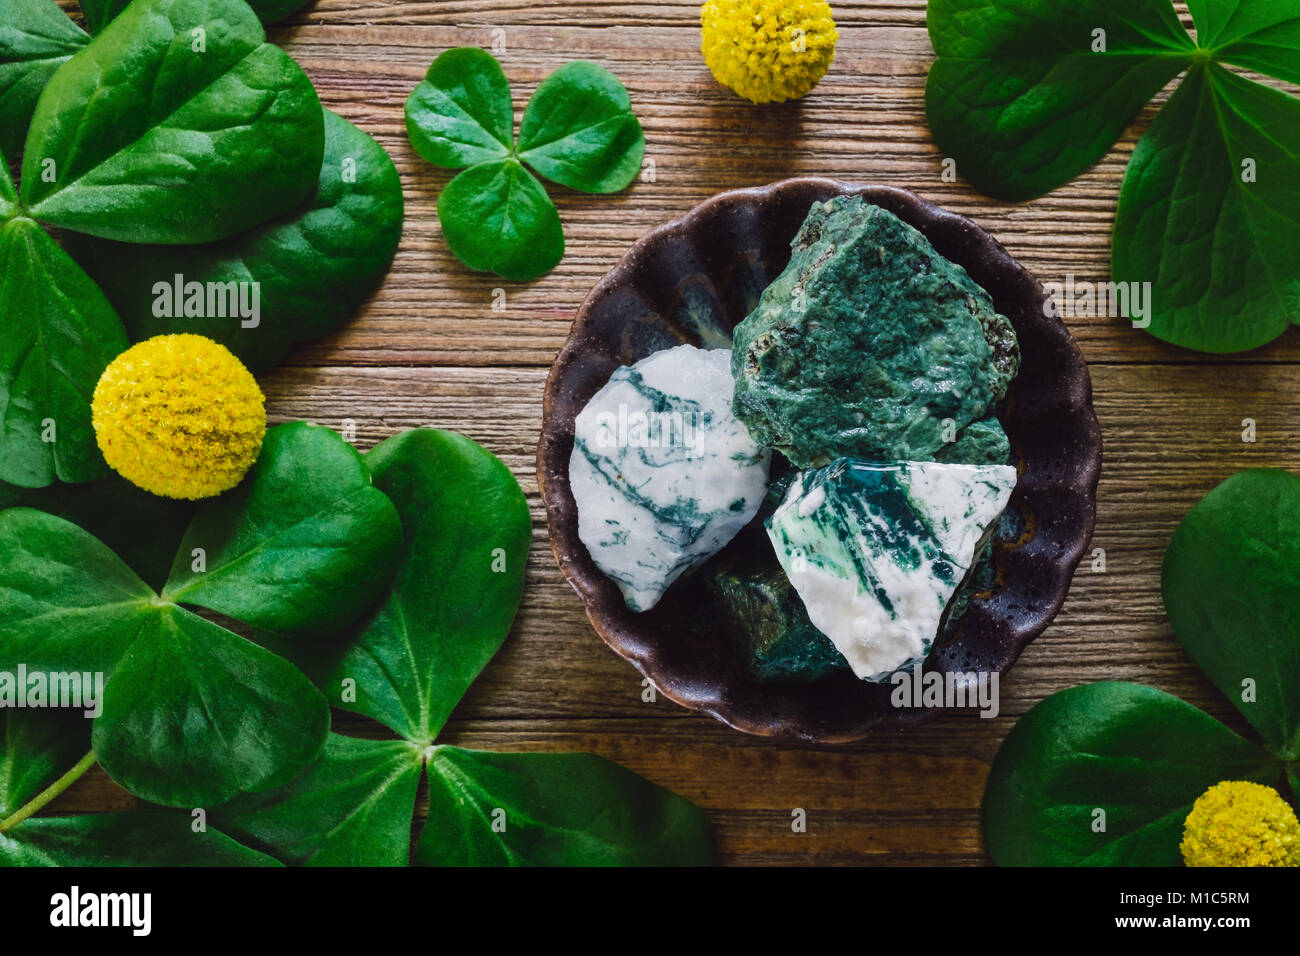 Stones and Elements of St. Patrick's Day, Including Shamrocks, Green Aventurine and Tree Agate. - Stock Image